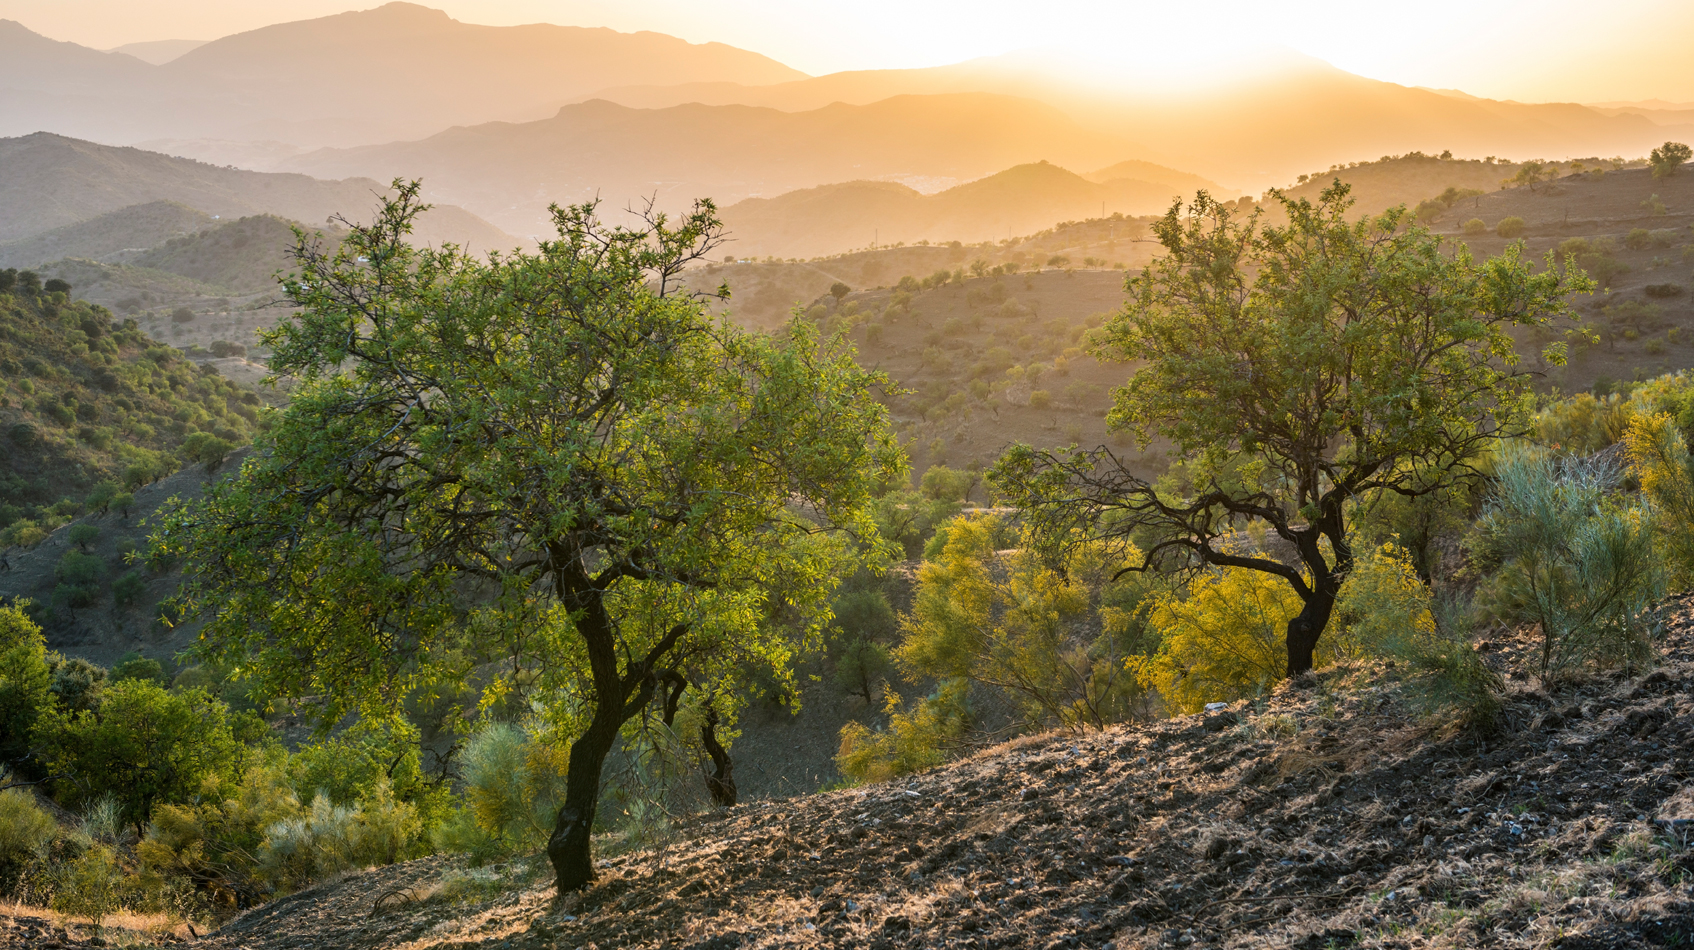 Andalusia-sunset-with-olive-tree-©-Joel-Carillet_iStock_http___www.istockphoto.com_photo_andalusian-landscape-at-sunset-with-olive-trees-in-spain-43670298